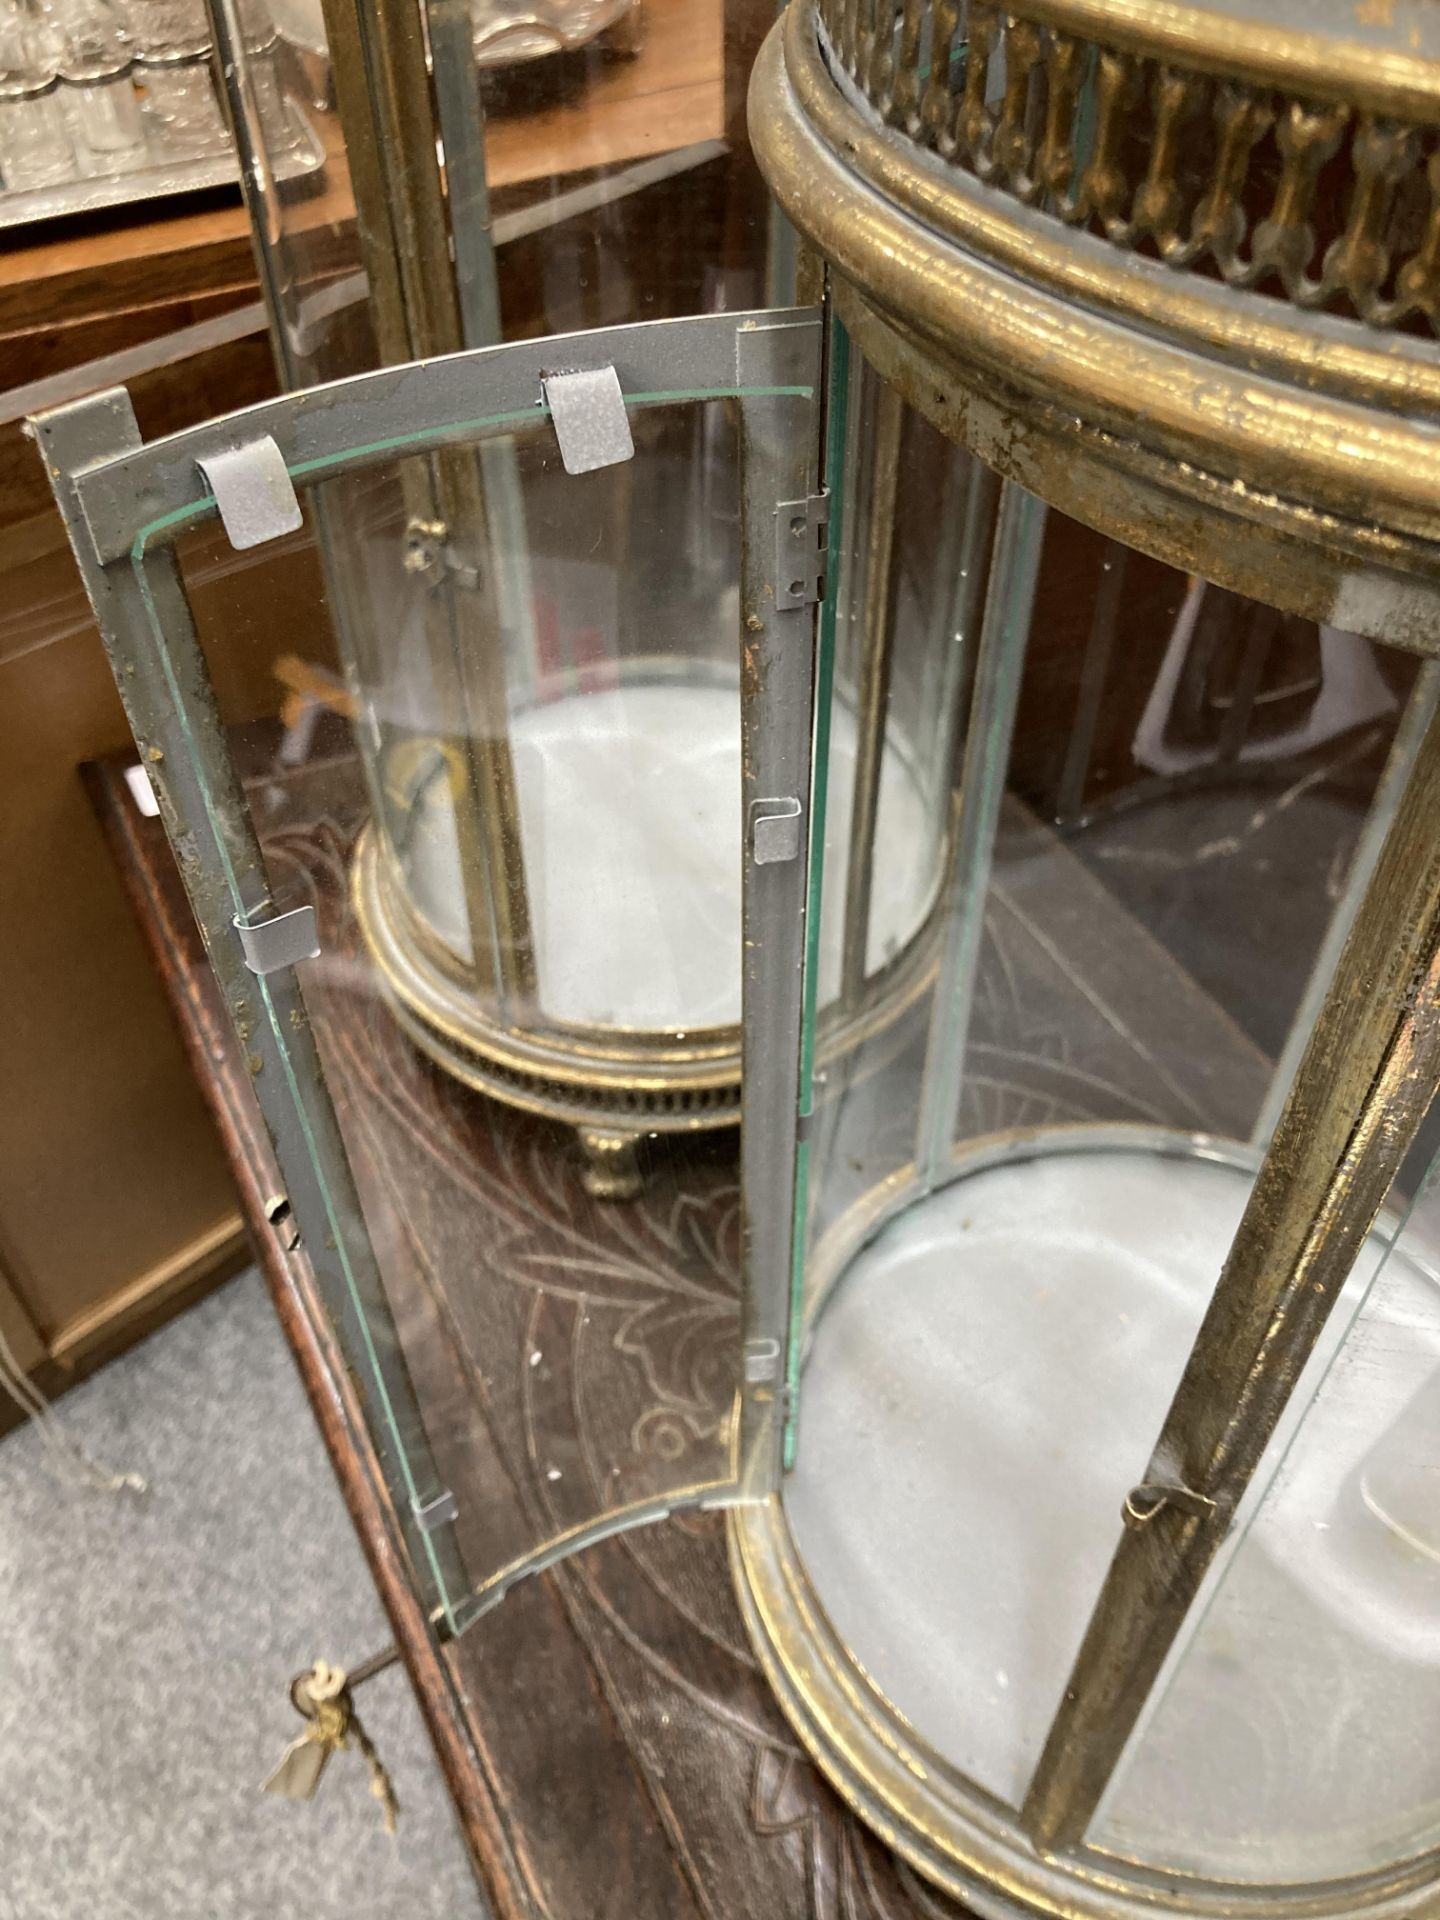 A PAIR OF PERIOD STYLE GILT METAL HANGING LANTERNS, each with domed top and hinged door. 78cm high - Bild 5 aus 6